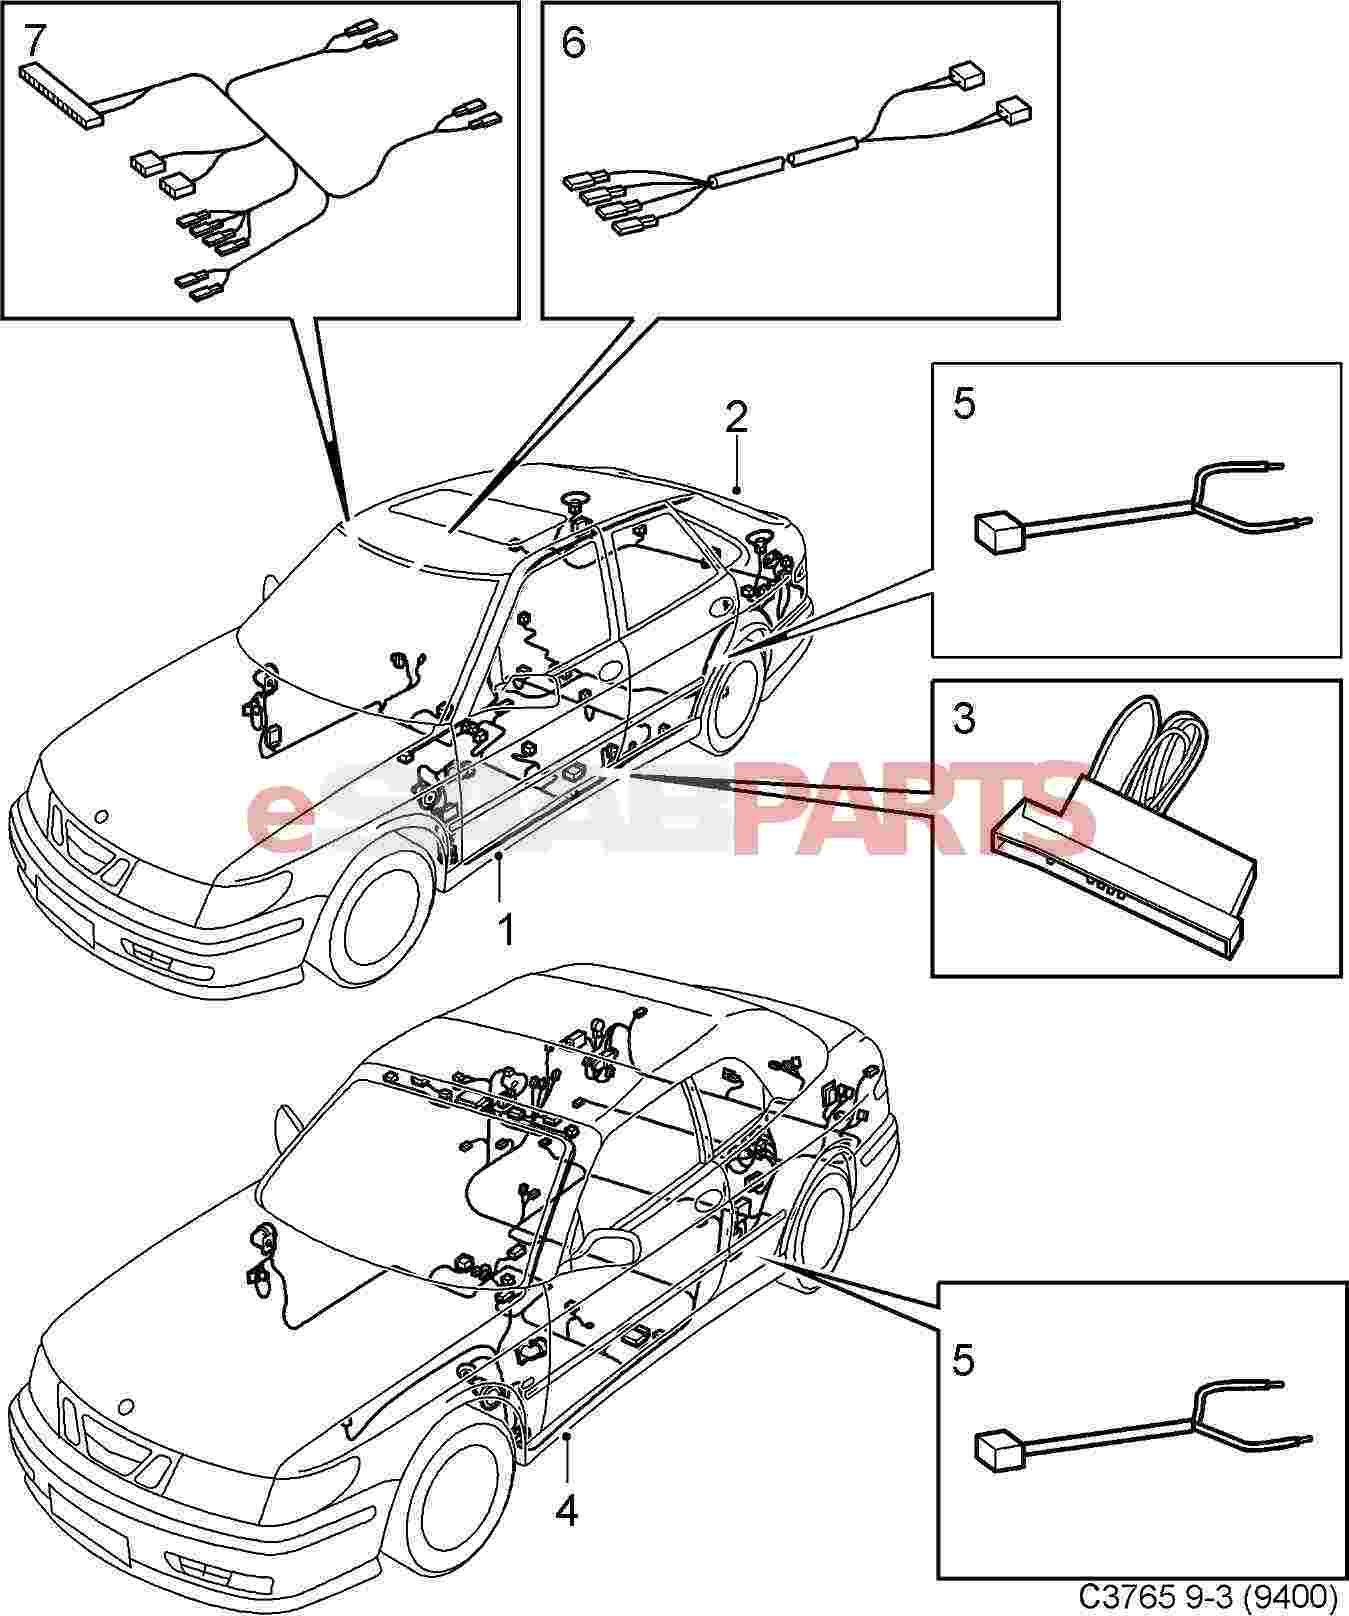 Saab 9 3 9400 Electrical Parts Wiring Harness Lighting Rear